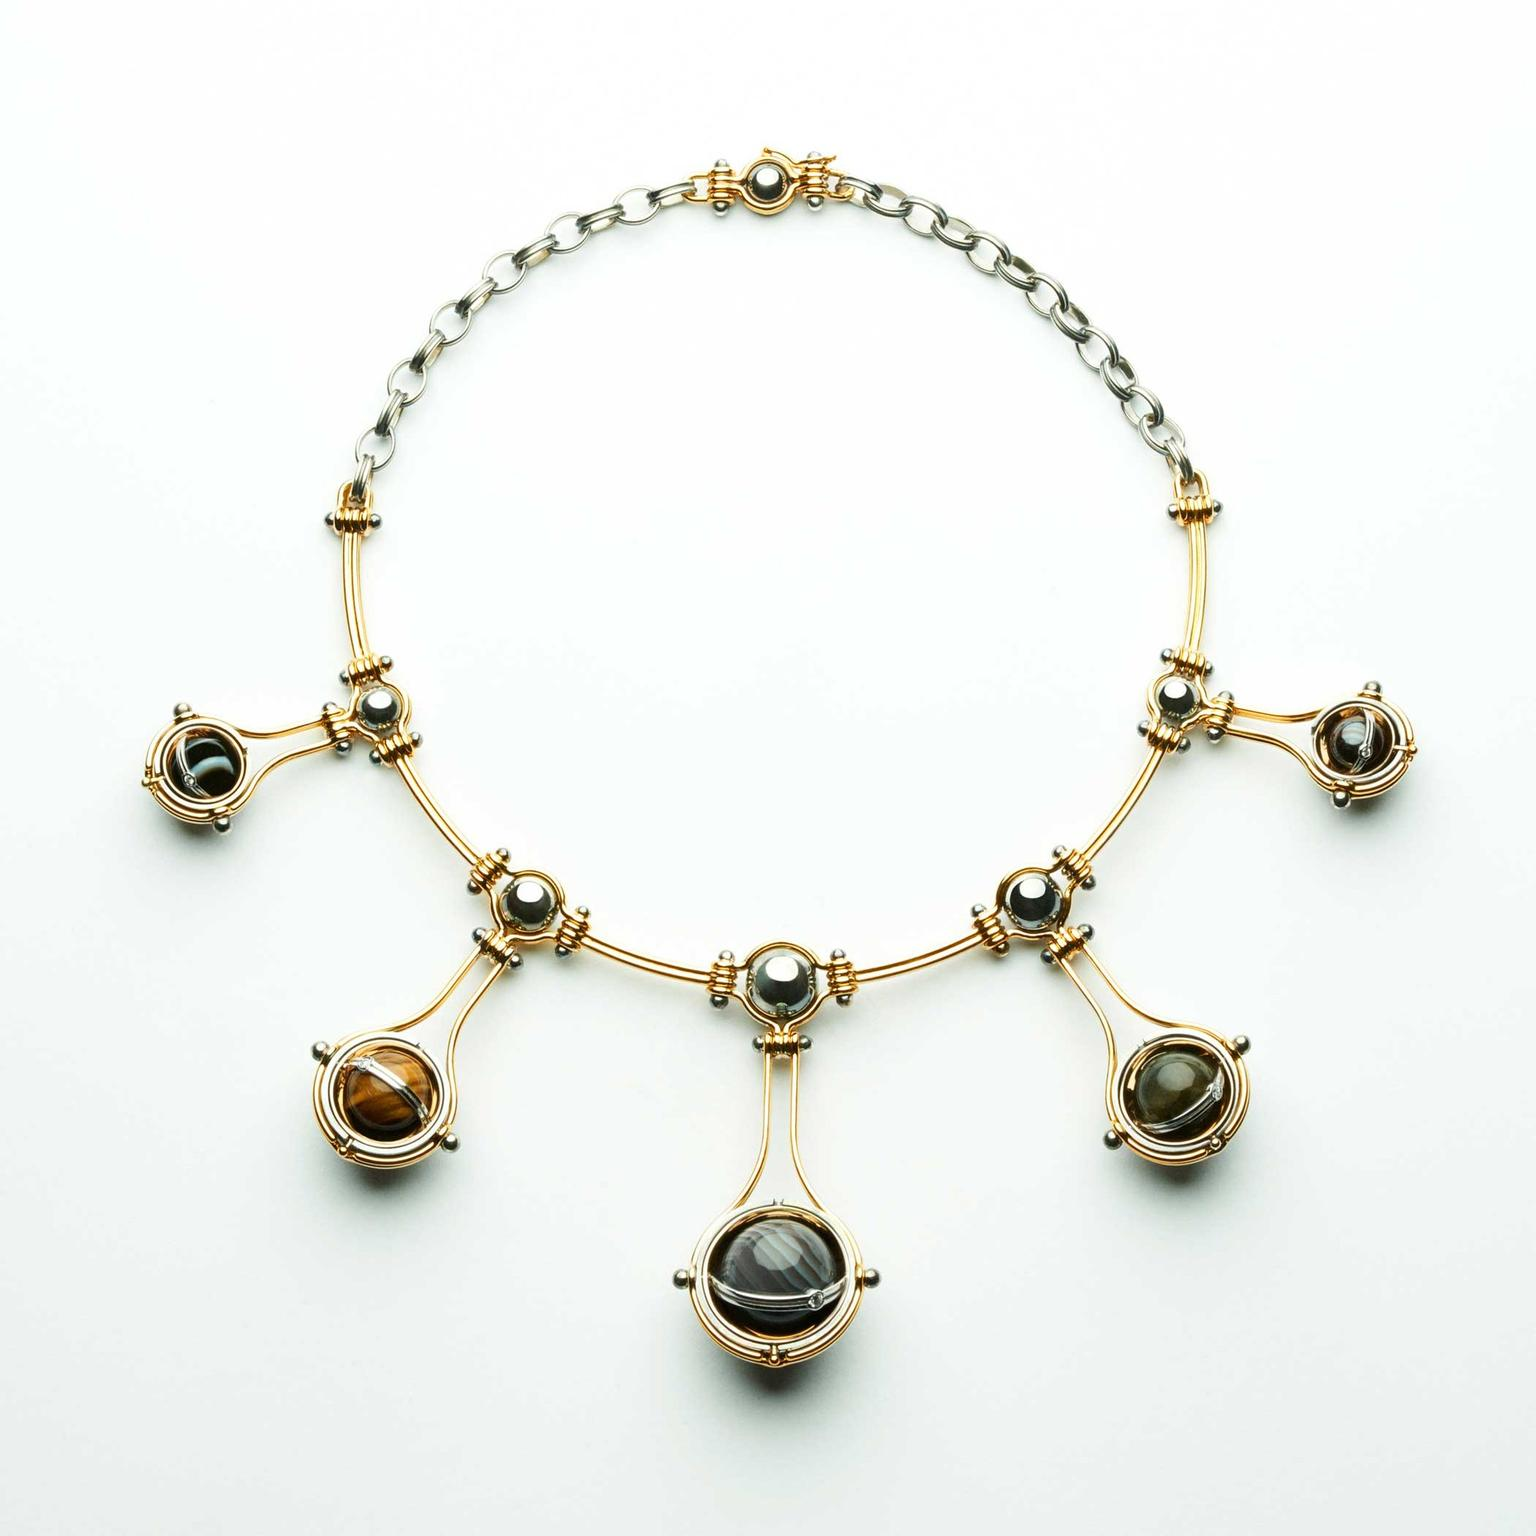 with tube gold chain pendant top link gemstone black white necklace wearing colored diamonds wallpaper gift type woman